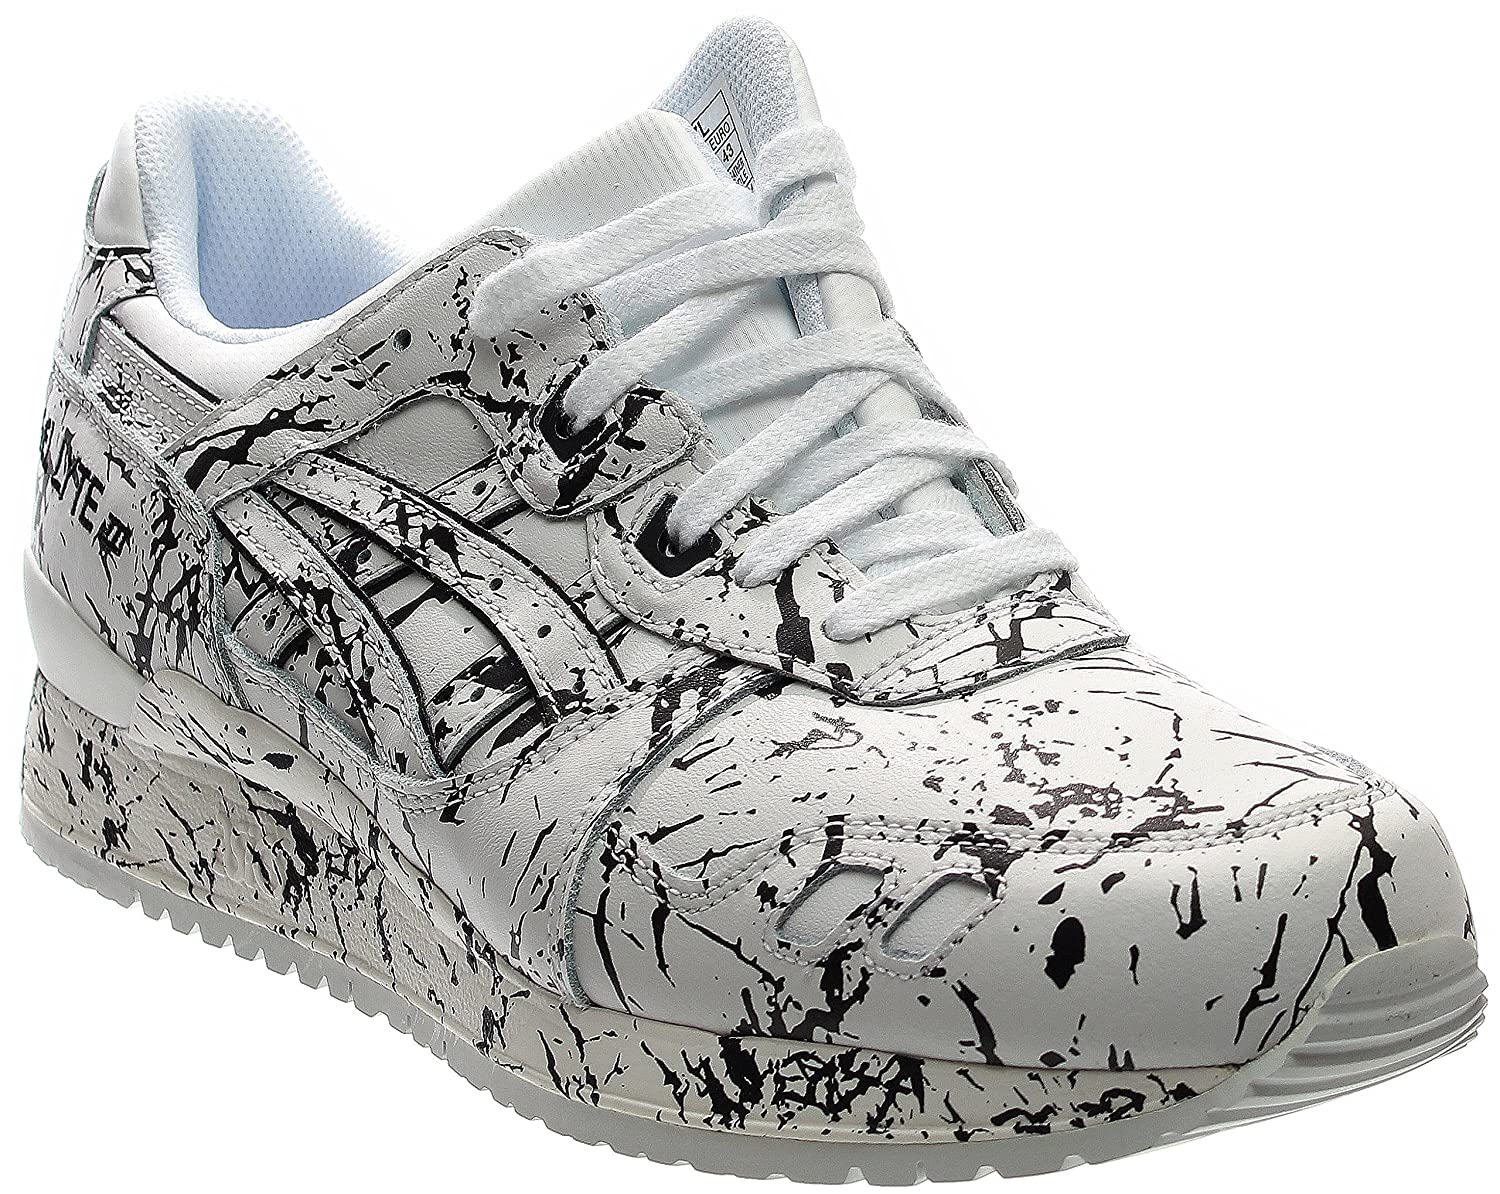 ASICS Men's Gel-Lyte III Running Shoe B00ZQ2PYOO 11 D(M) US|White